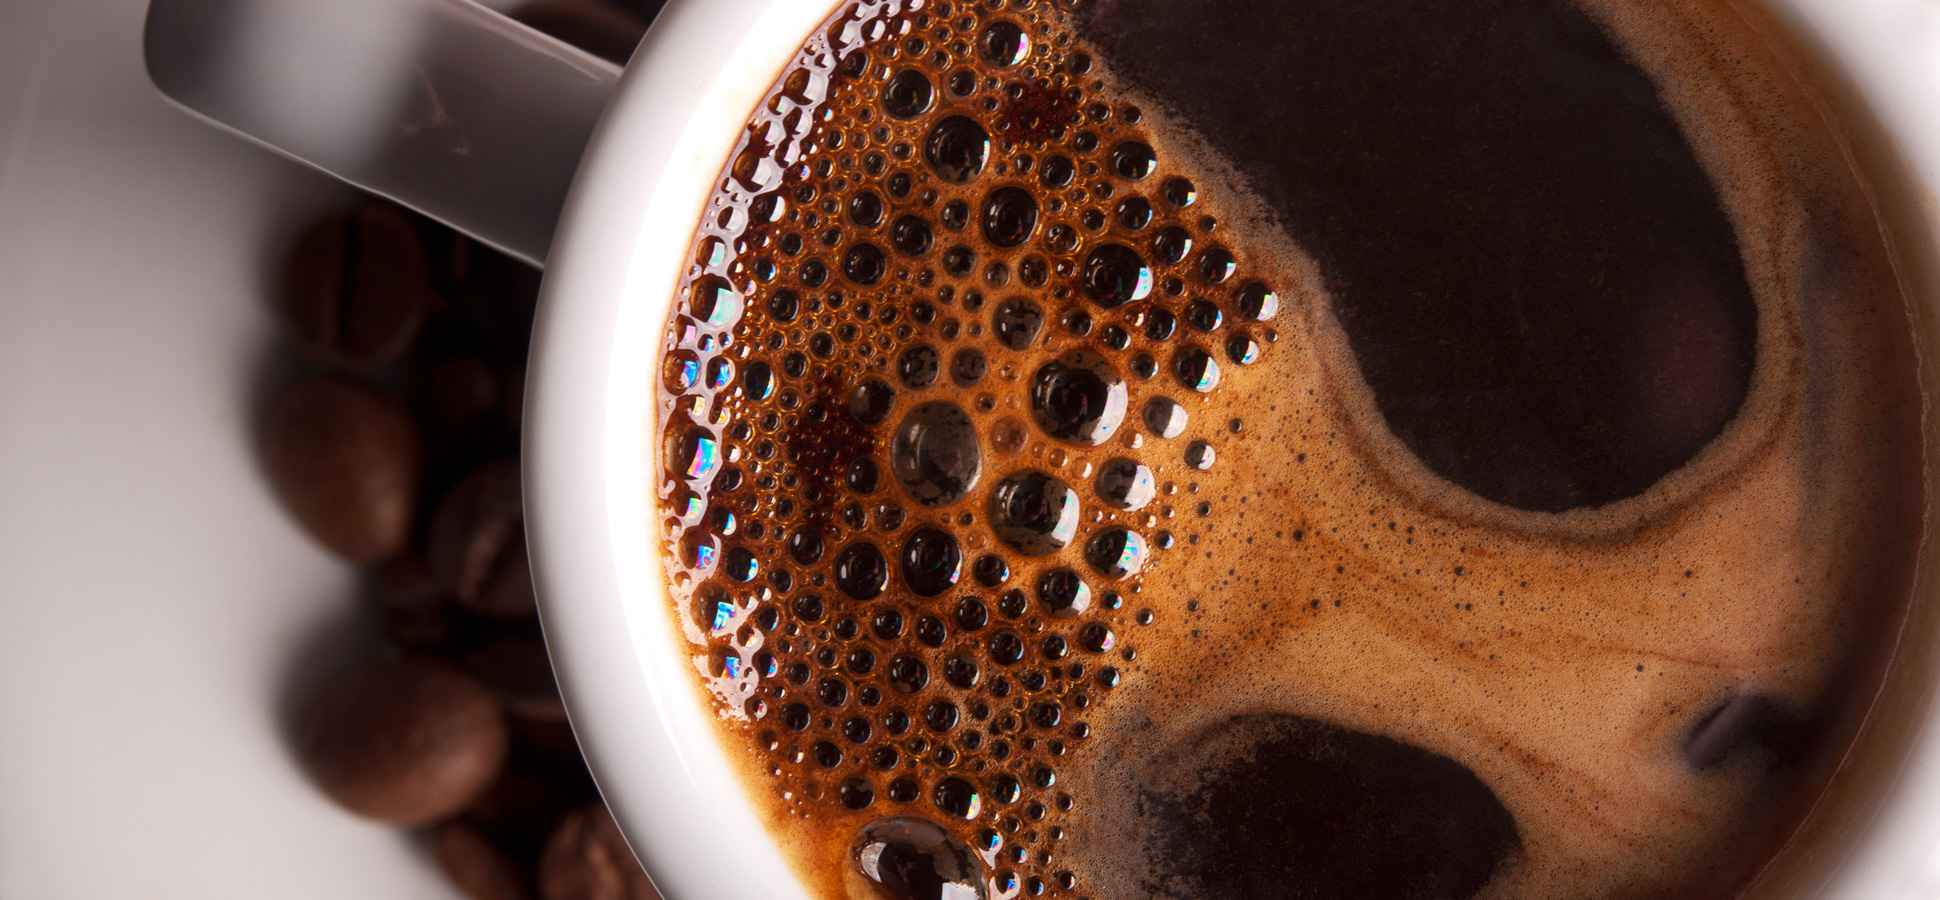 Horrible Things That Can Happen If You Drink Too Much Caffeine - Good bad effects coffee can